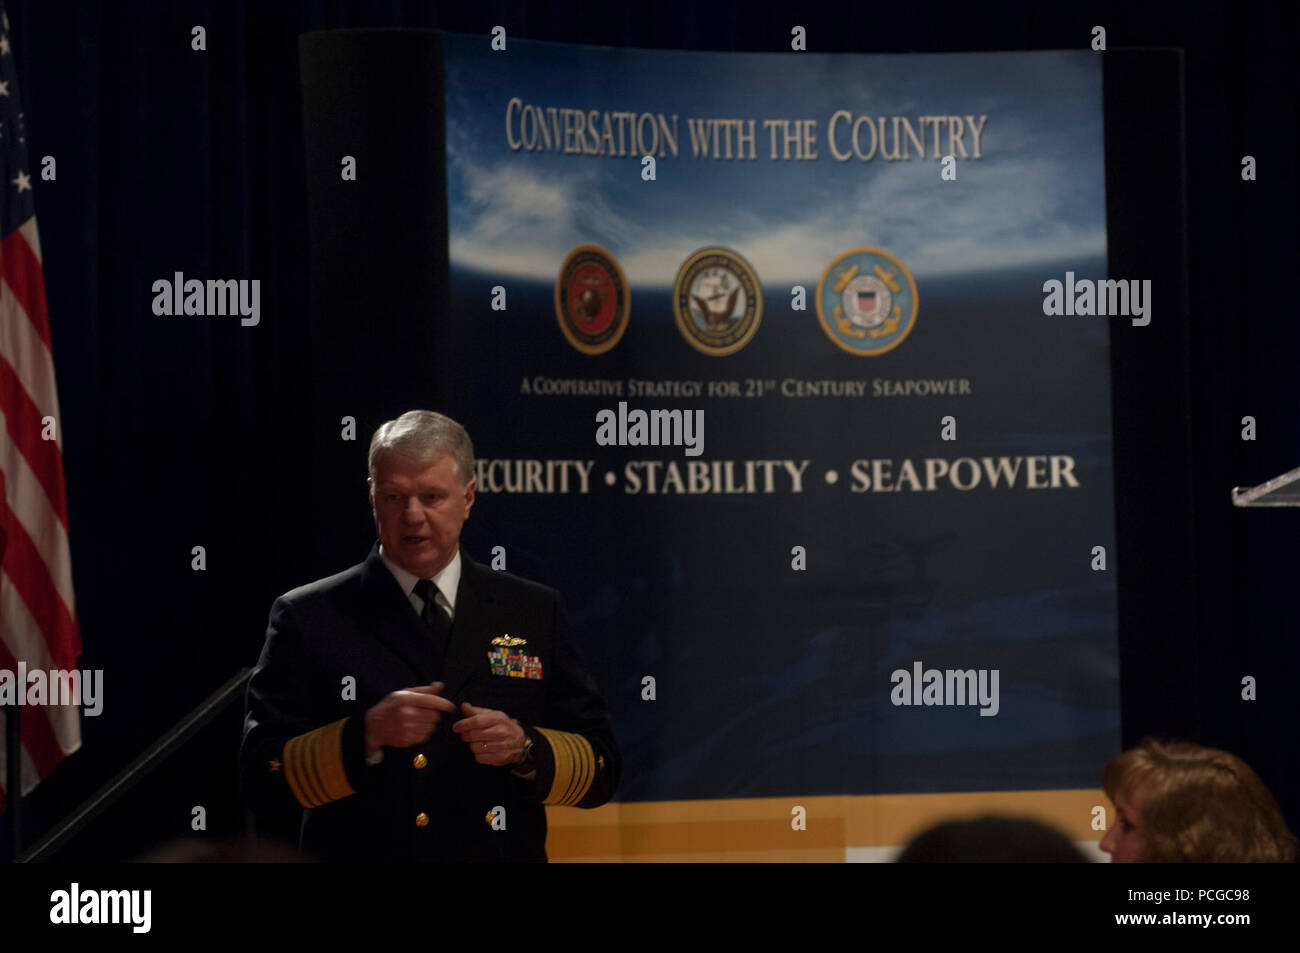 DENVER, Col (March 27, 2008) âÄì Chief of Naval Operations (CNO) Adm. Gary Roughead speaks  with local academia, business leaders and government officials and answers questions during the 'Conversation with the Country' in Denver, Col.  Roughead discussed  the important role of Sailors and Navy civilians in the Cooperative Strategy for 21st Century Seapower. U.S. Navy - Stock Image